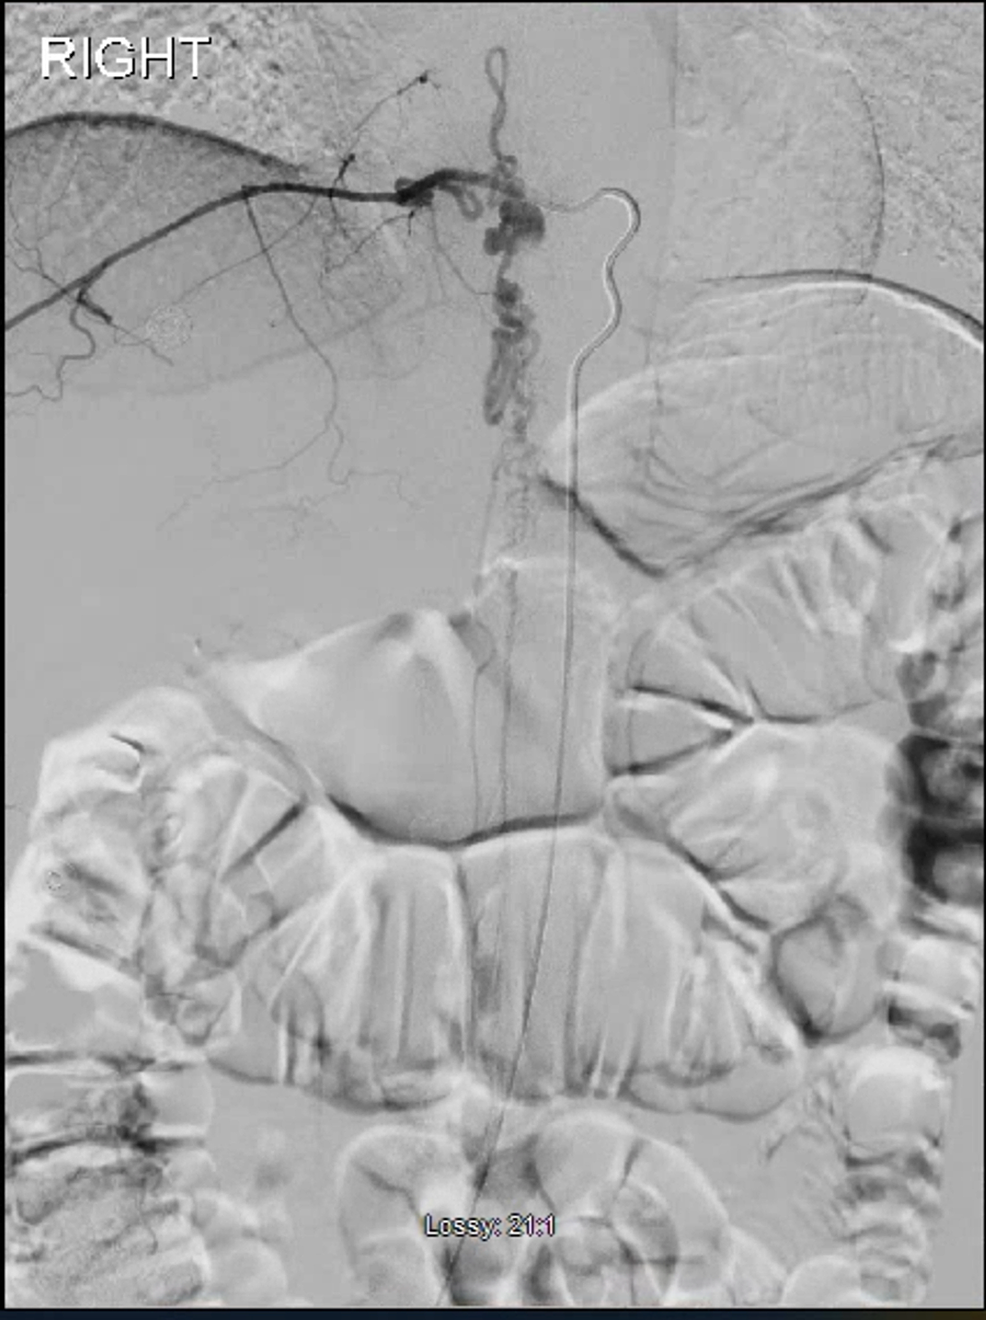 Spinal-digital-subtraction-angiogram-showing-the-AVM-with-the-nidus-at-the-right-pedicle-of-T9.